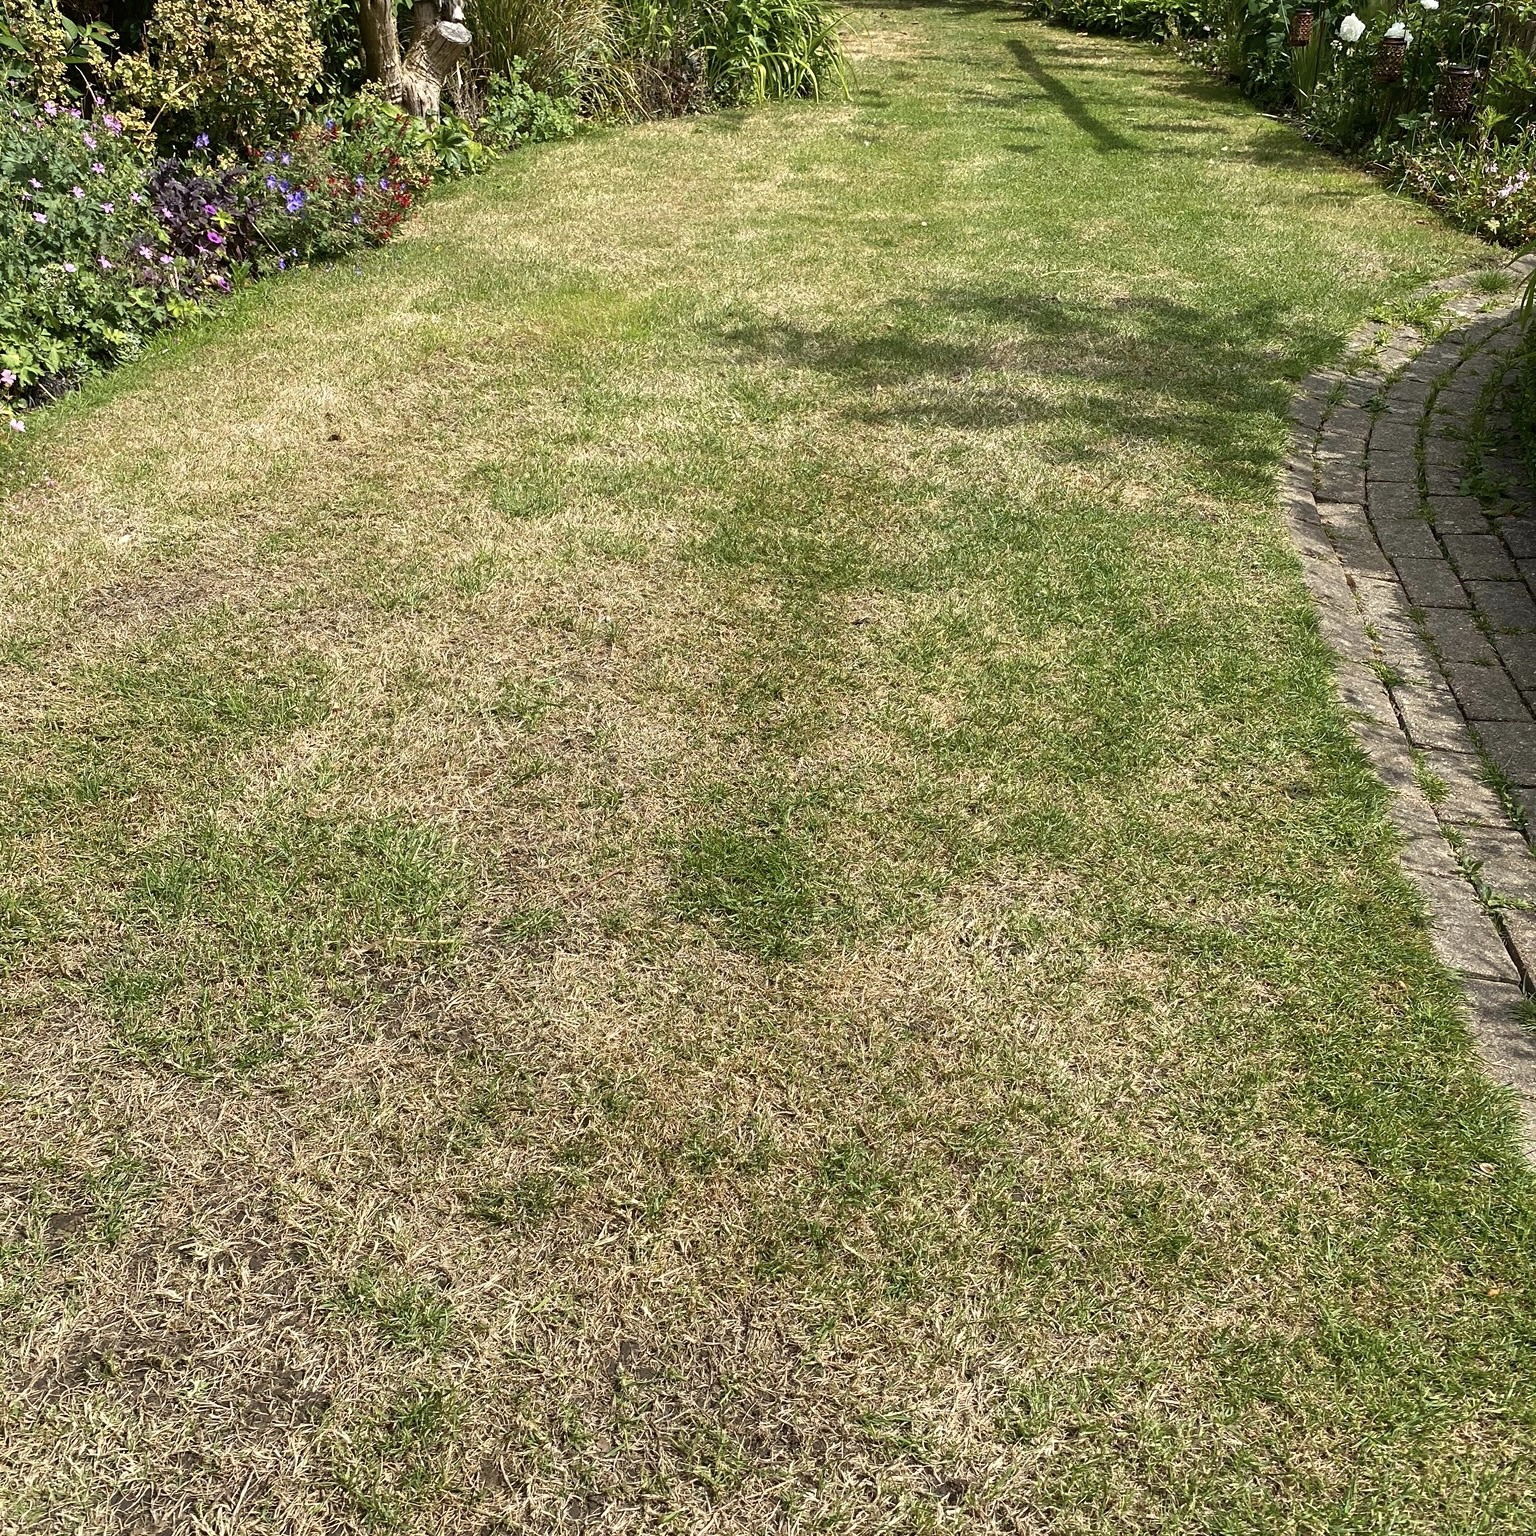 Brown patchy untreated lawn before lawn treatment